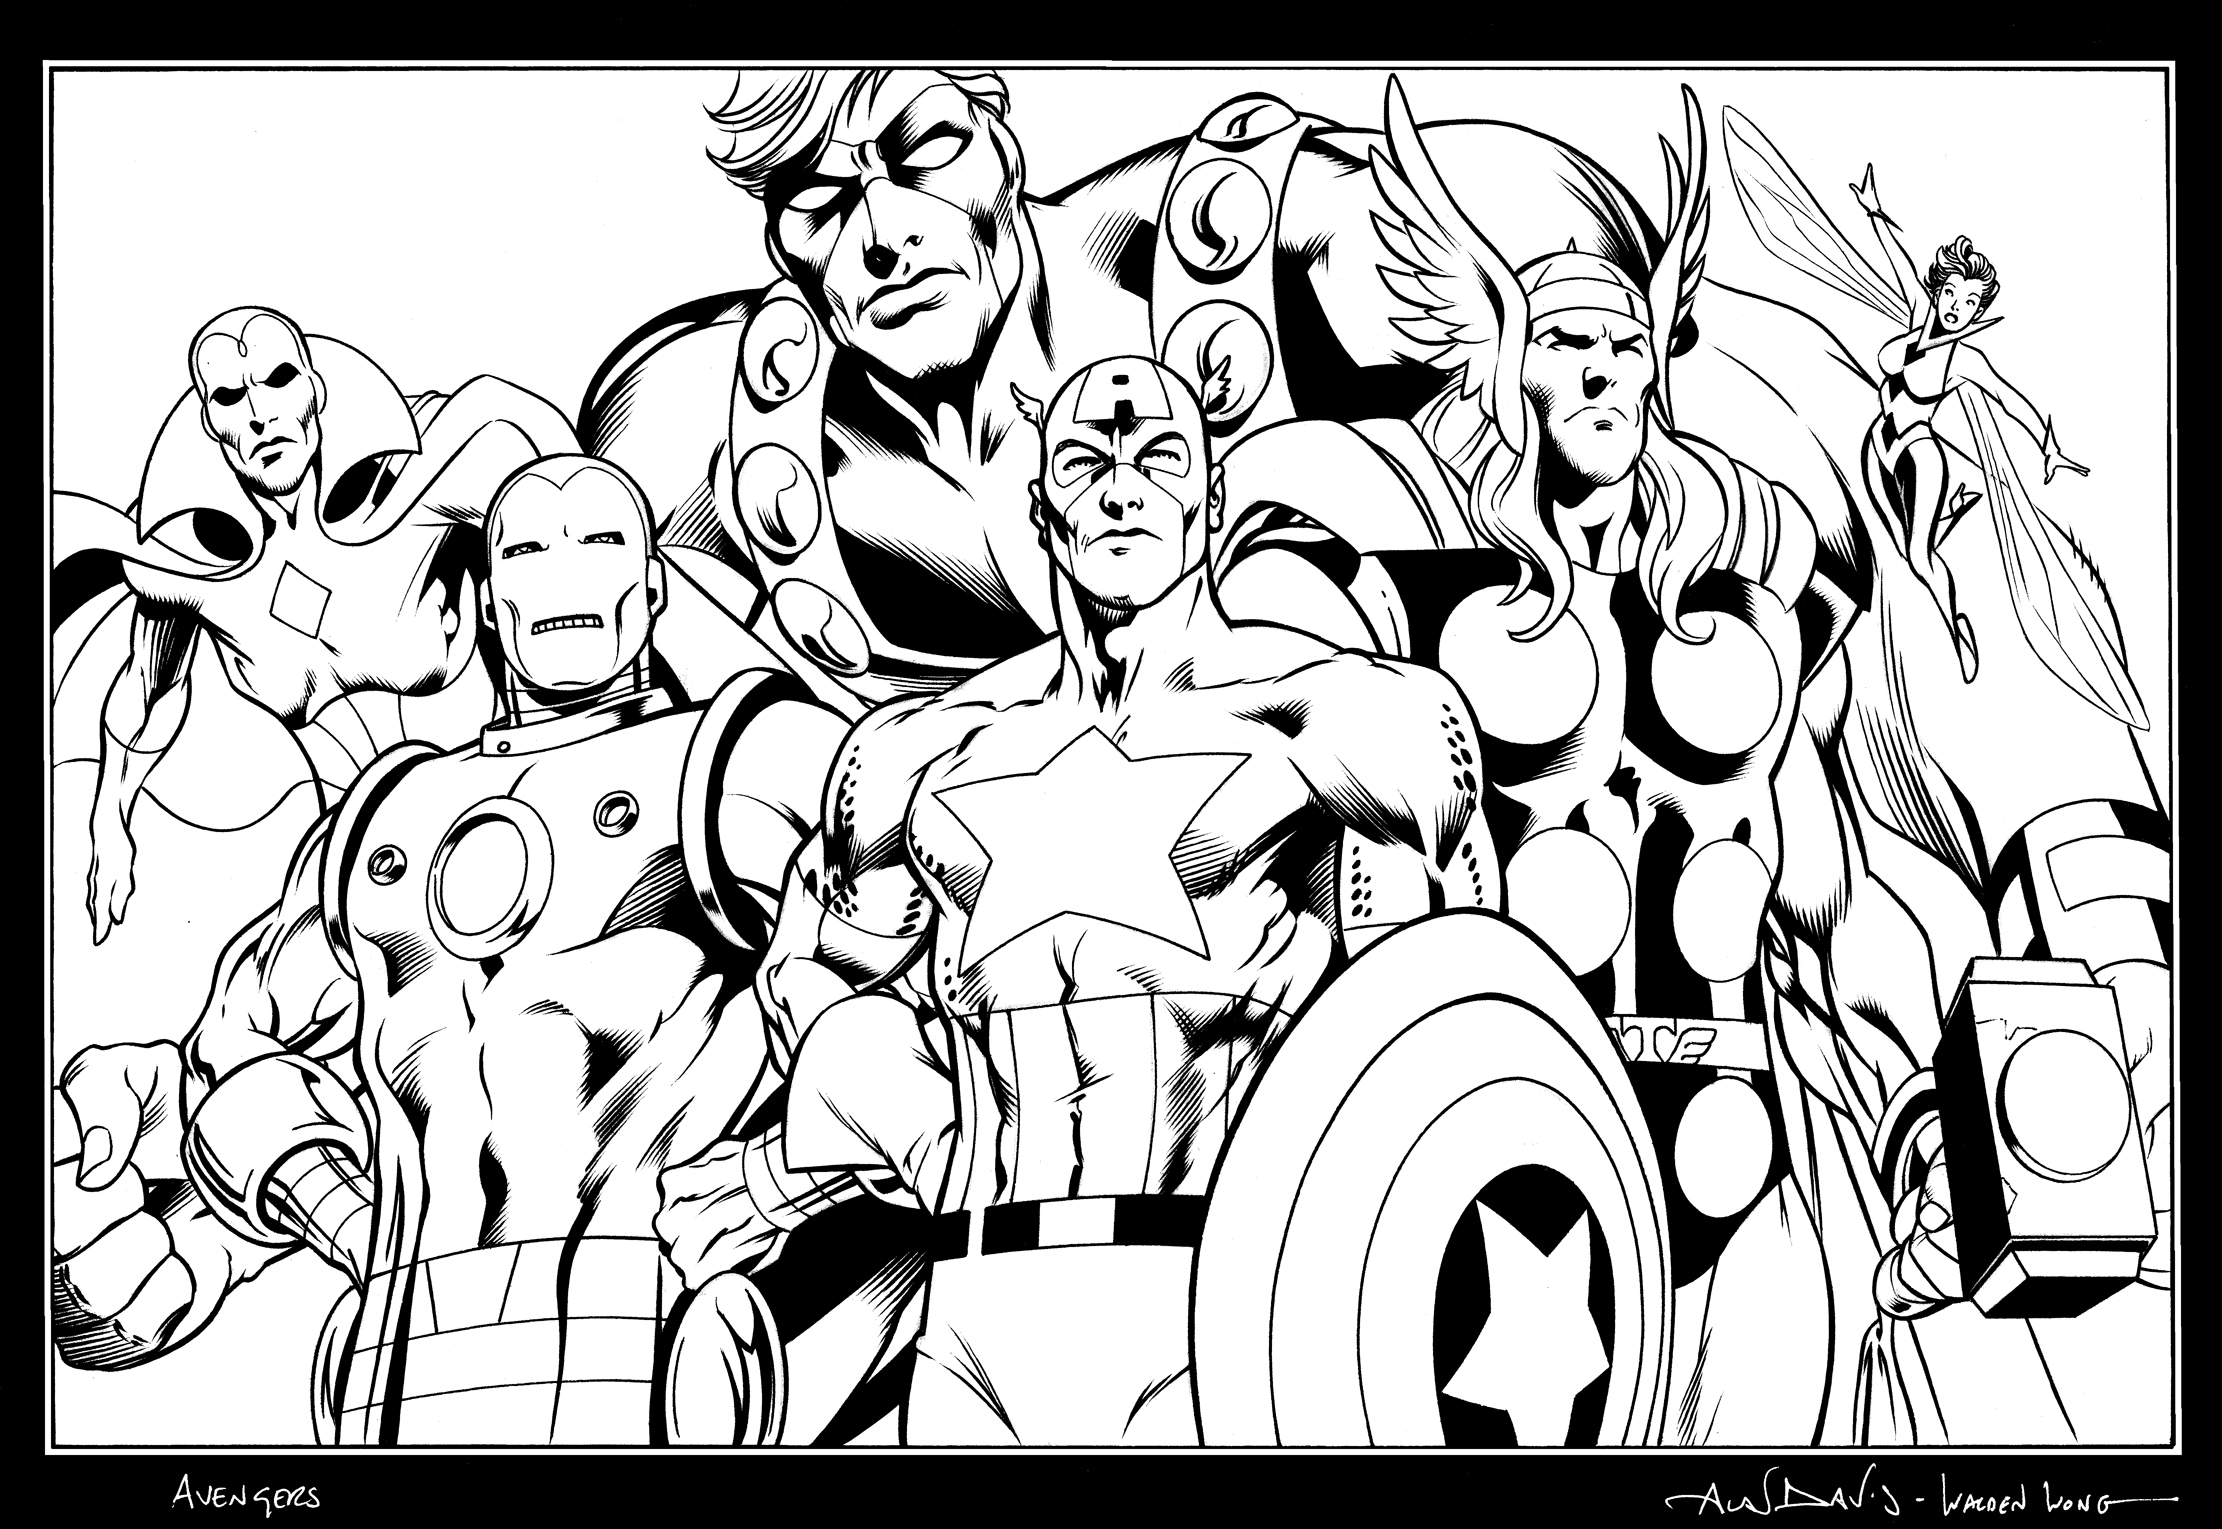 avengers coloring book pages avengers coloring pages print and colorcom coloring book avengers pages